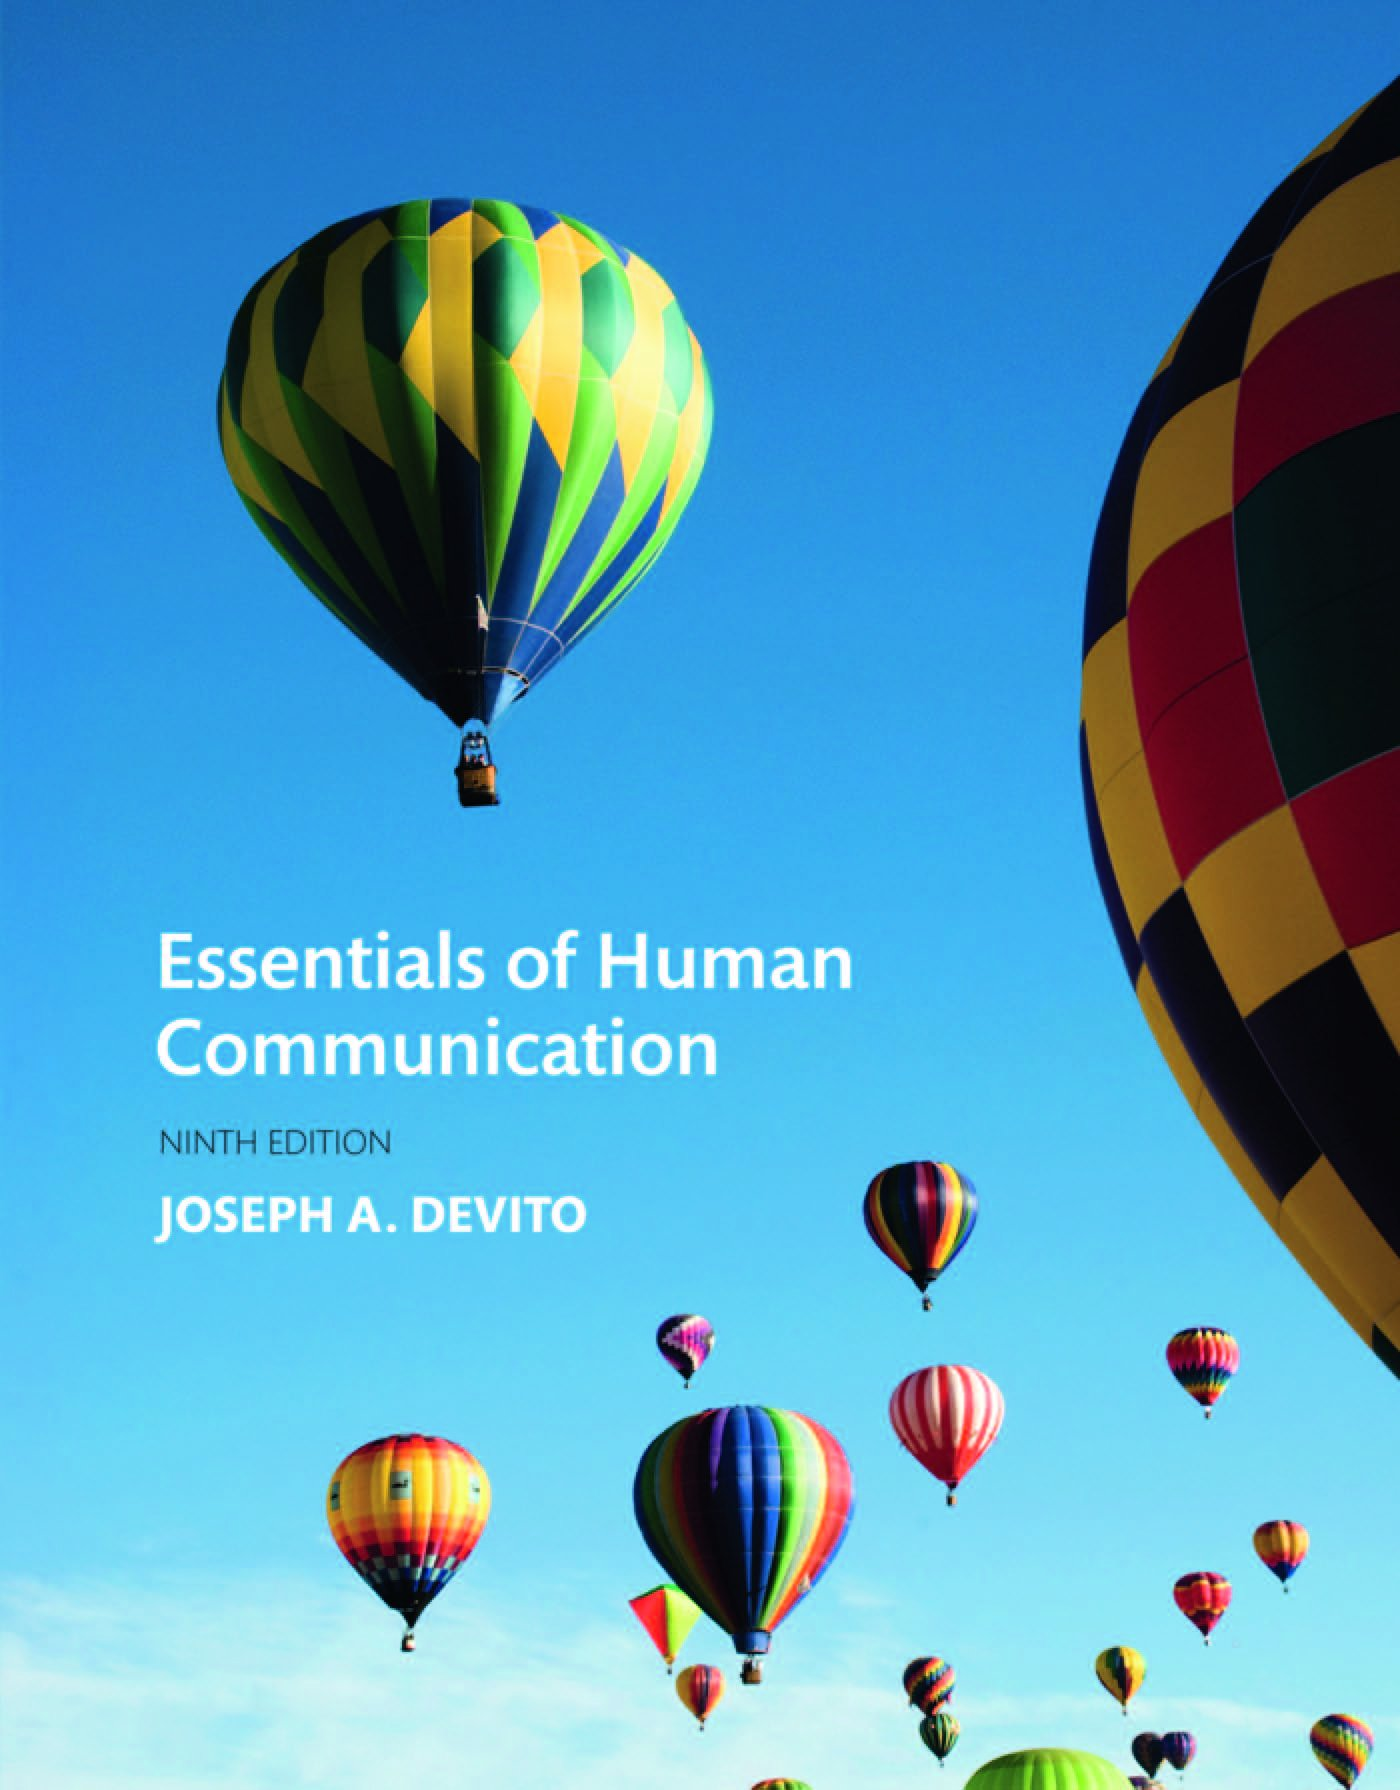 Essentials Of Human Communication 2 Downloads Kindle Edition By Devito Joseph A Reference Kindle Ebooks Amazon Com